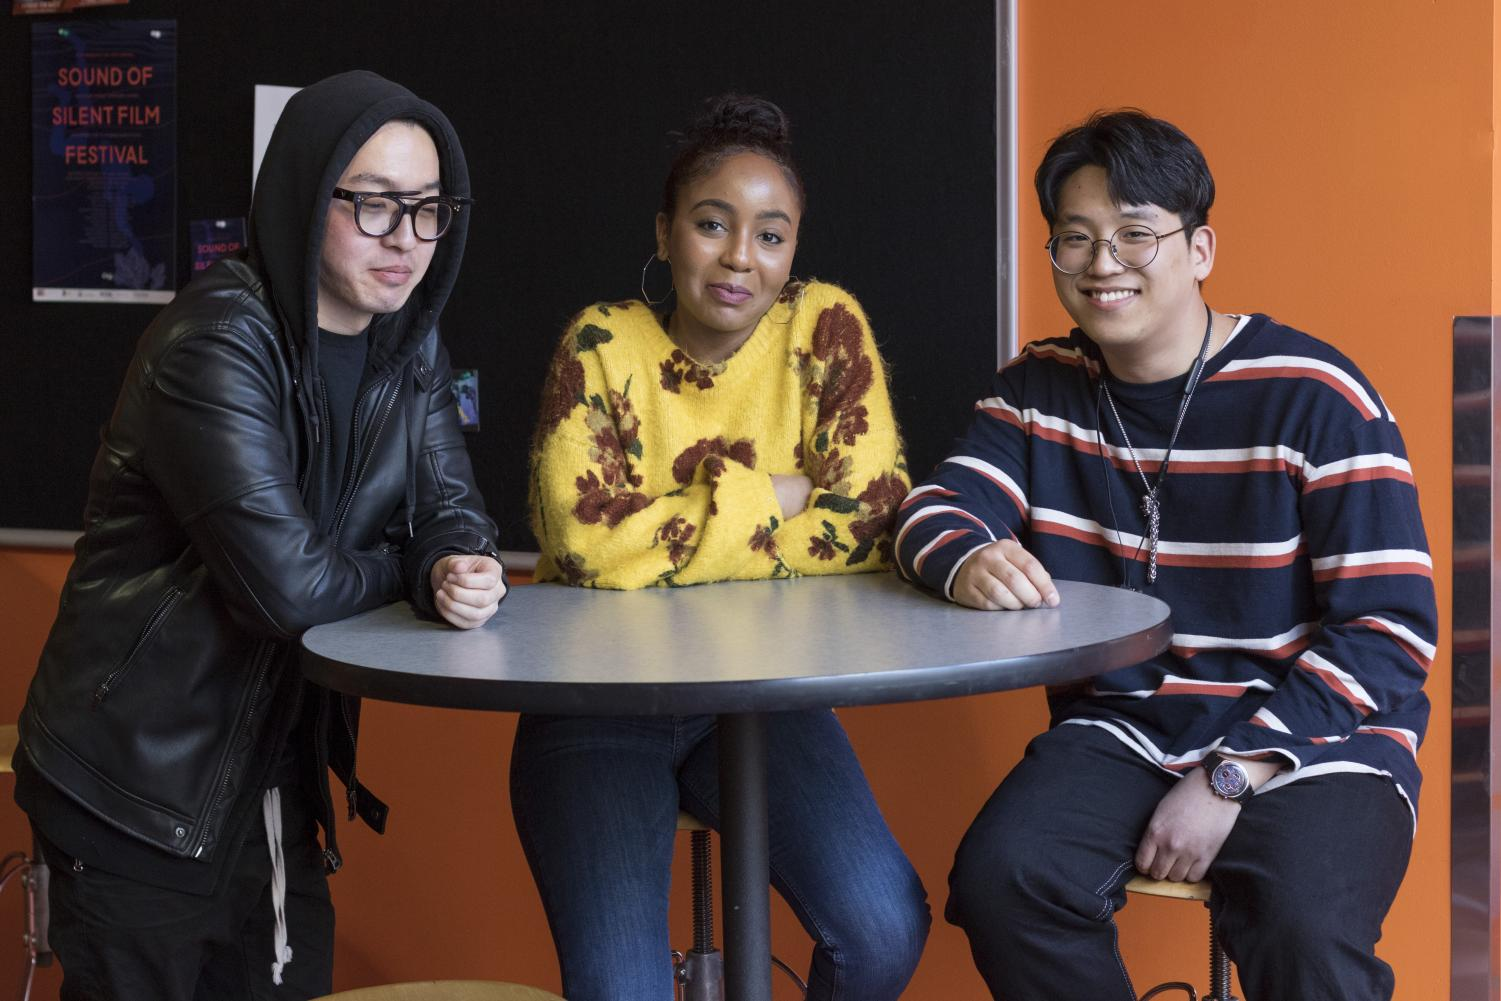 Peter Jang, Donovan Thomas and Jeonghun Han are part of OFFLINE, which works to provide art students better networking opportunities.